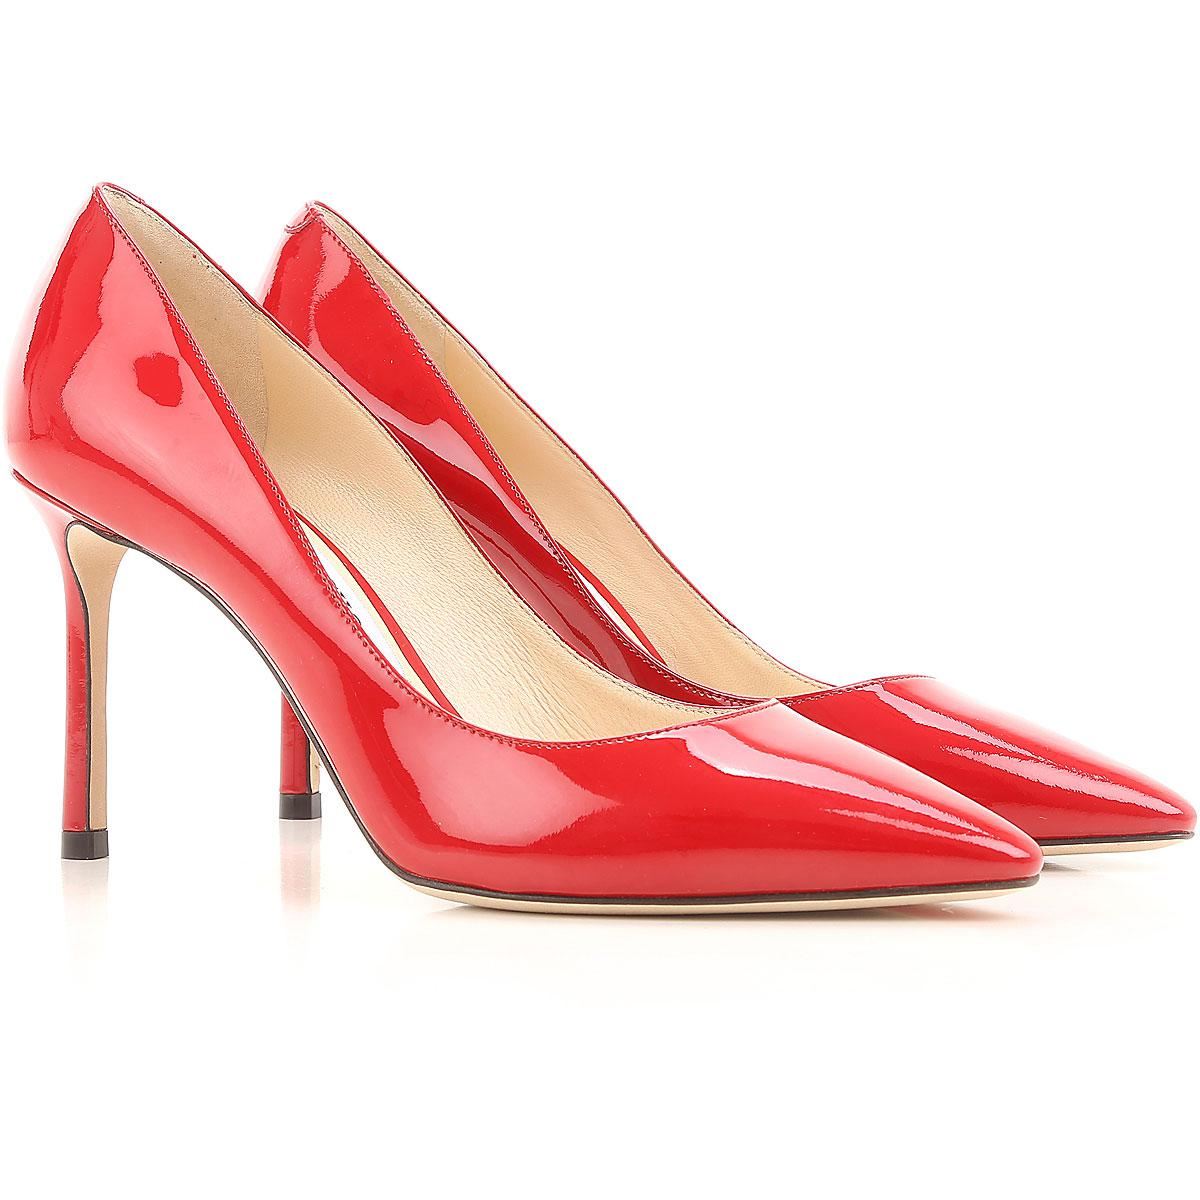 Where To Buy Jimmy Choo Shoes In Uk